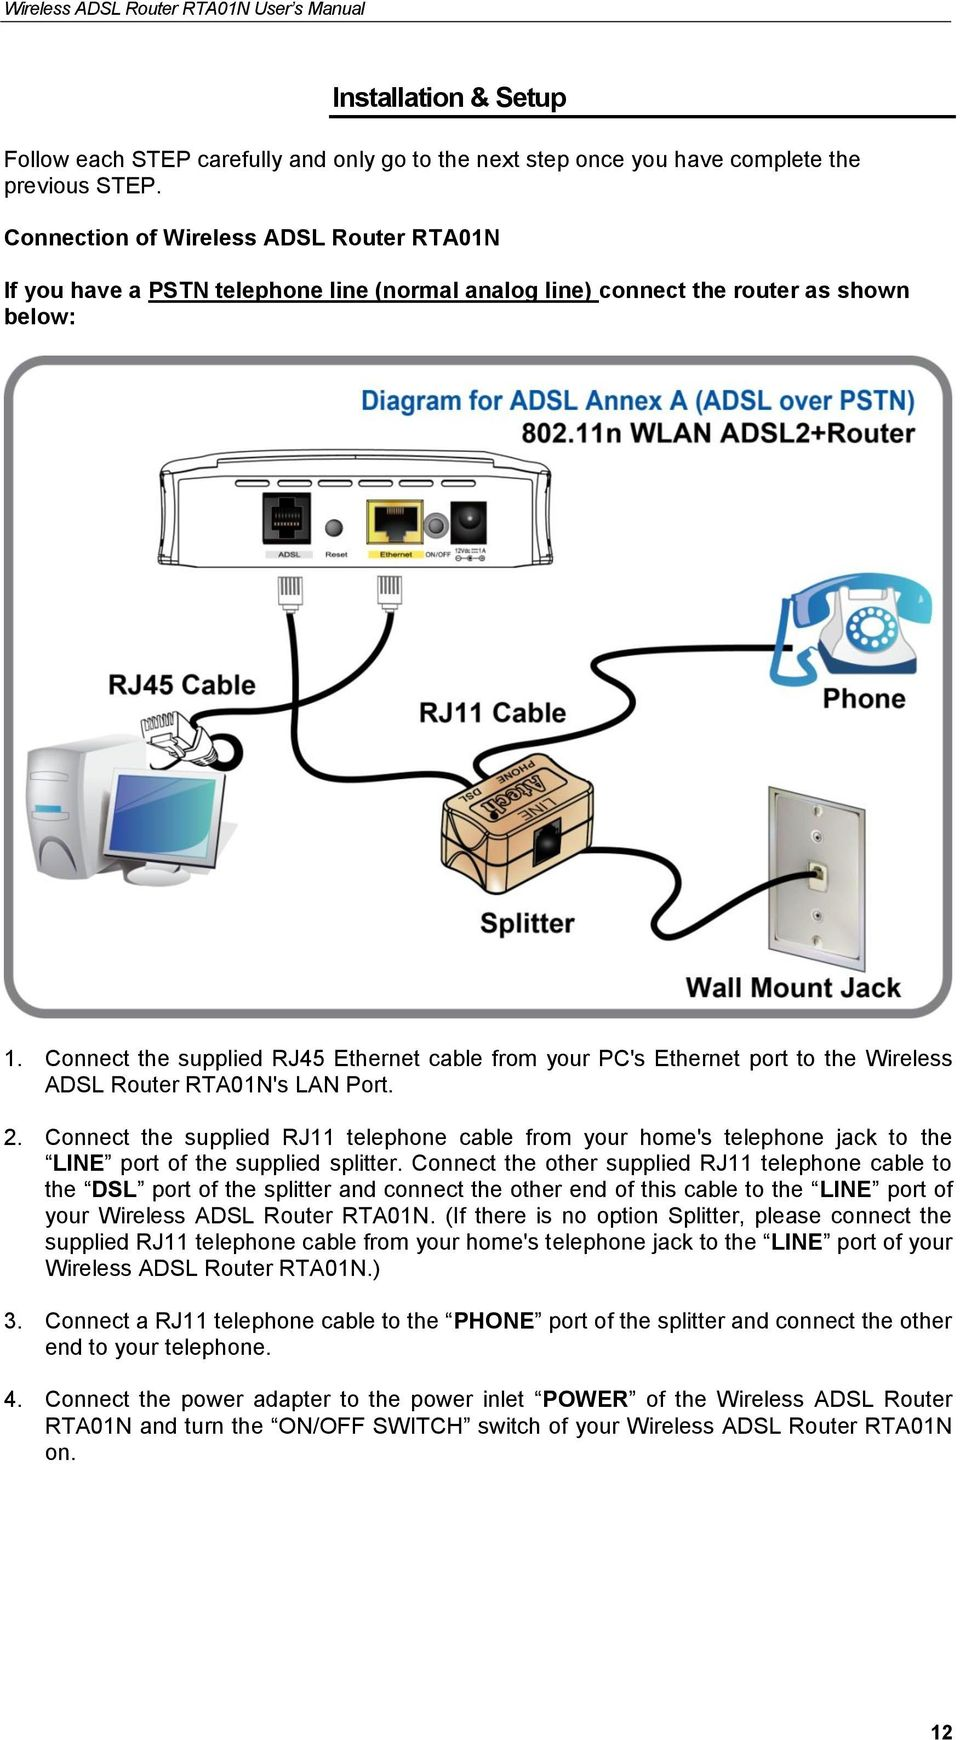 Wireless Adsl Router Rta01n User S Manual Pdf Telephone Extension Wiring Diagram Rj11 And Phone Connect The Supplied Rj45 Ethernet Cable From Your Pcs Port To